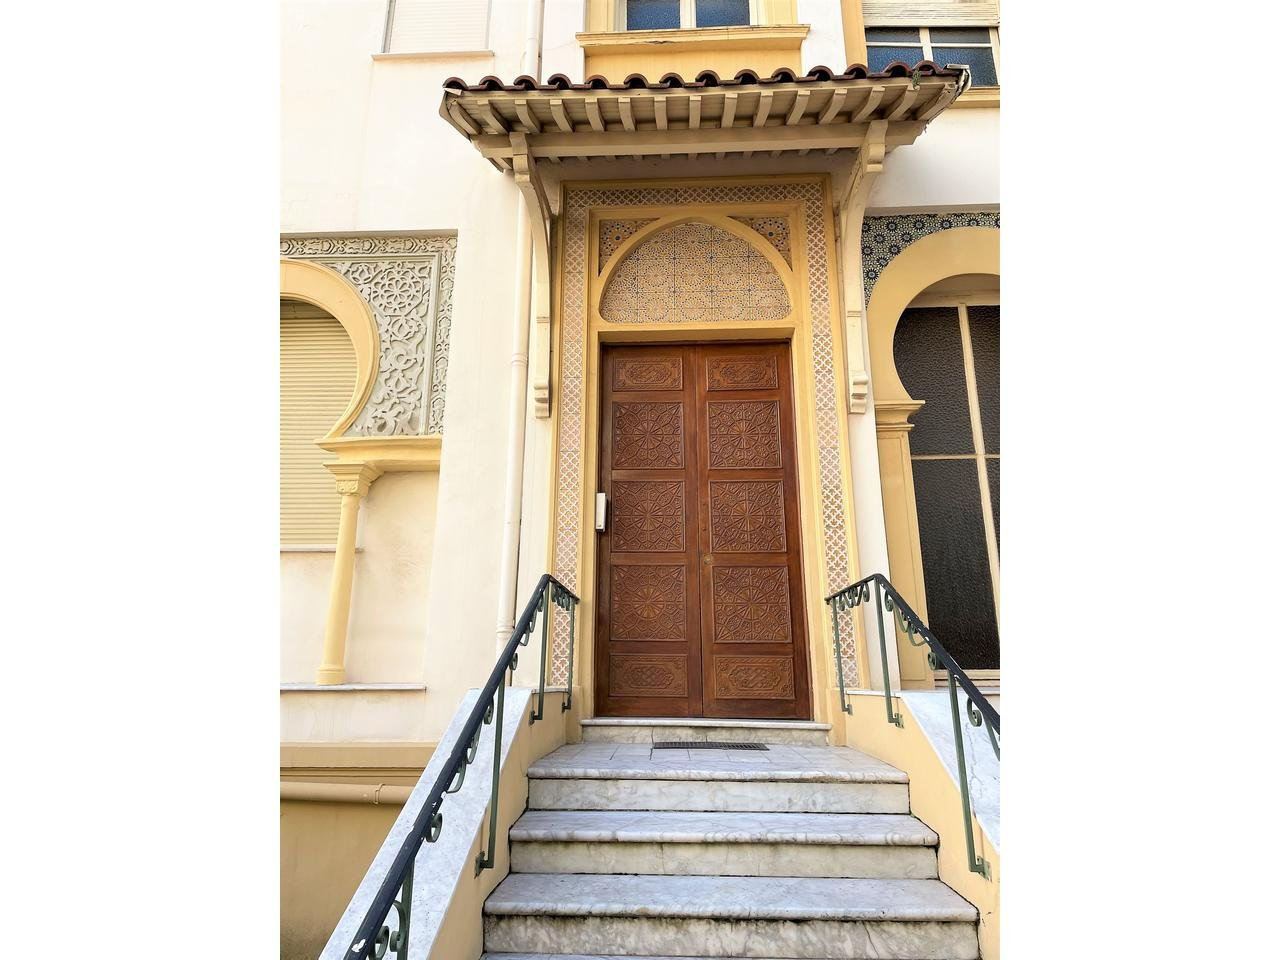 Appartement  2 Rooms 66m2  for sale   380000 €